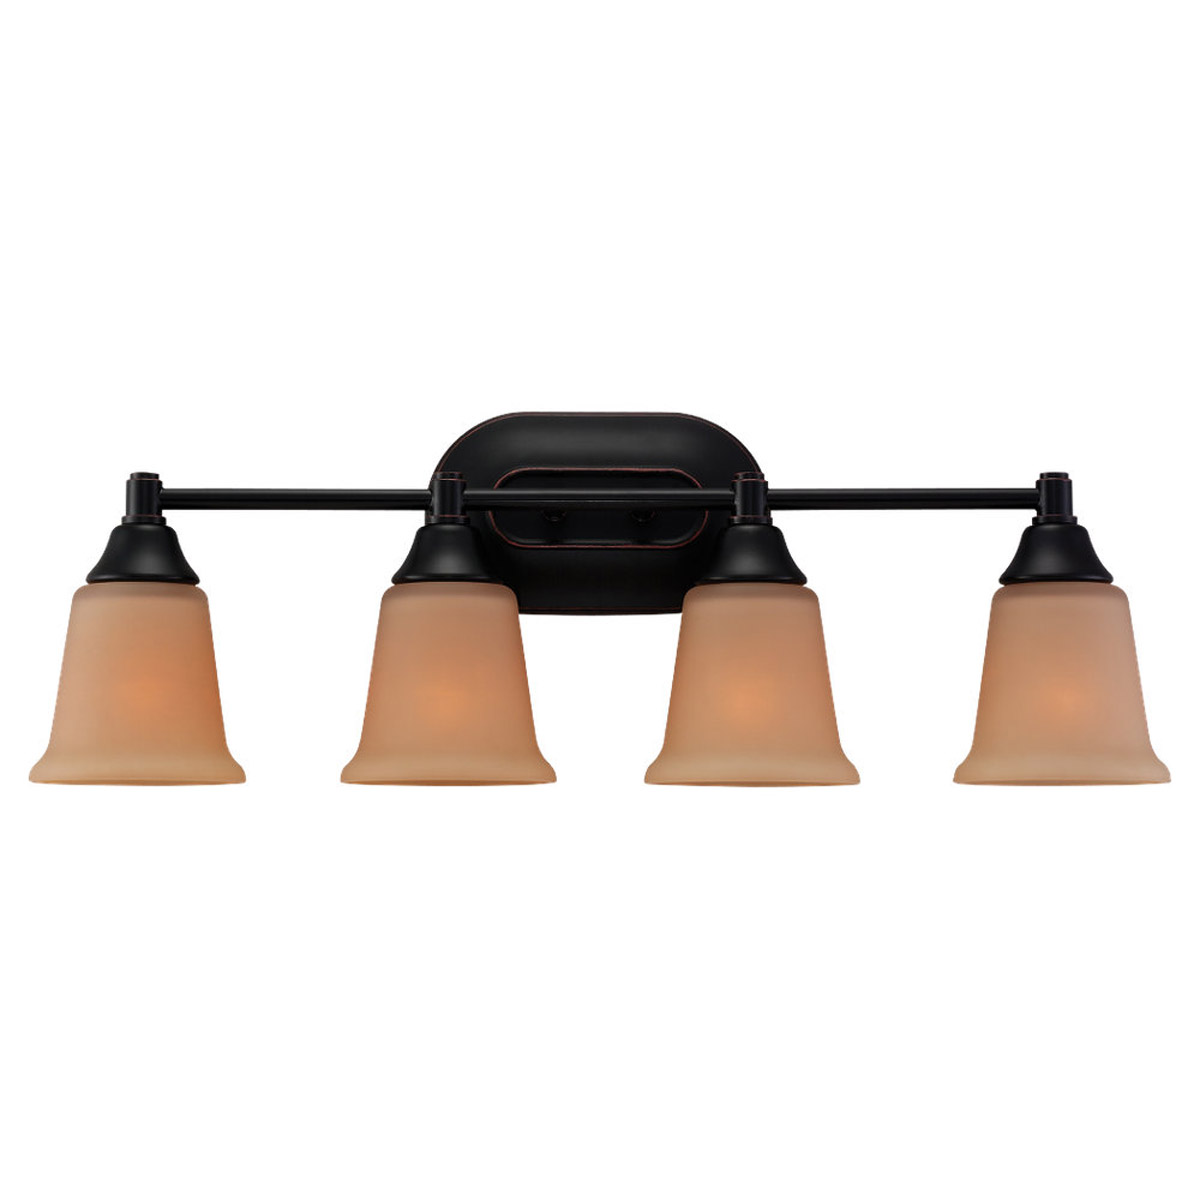 Sea Gull Lighting Belair 4 Light Wall / Bath / Vanity in Vintage Brown 44793-862 photo